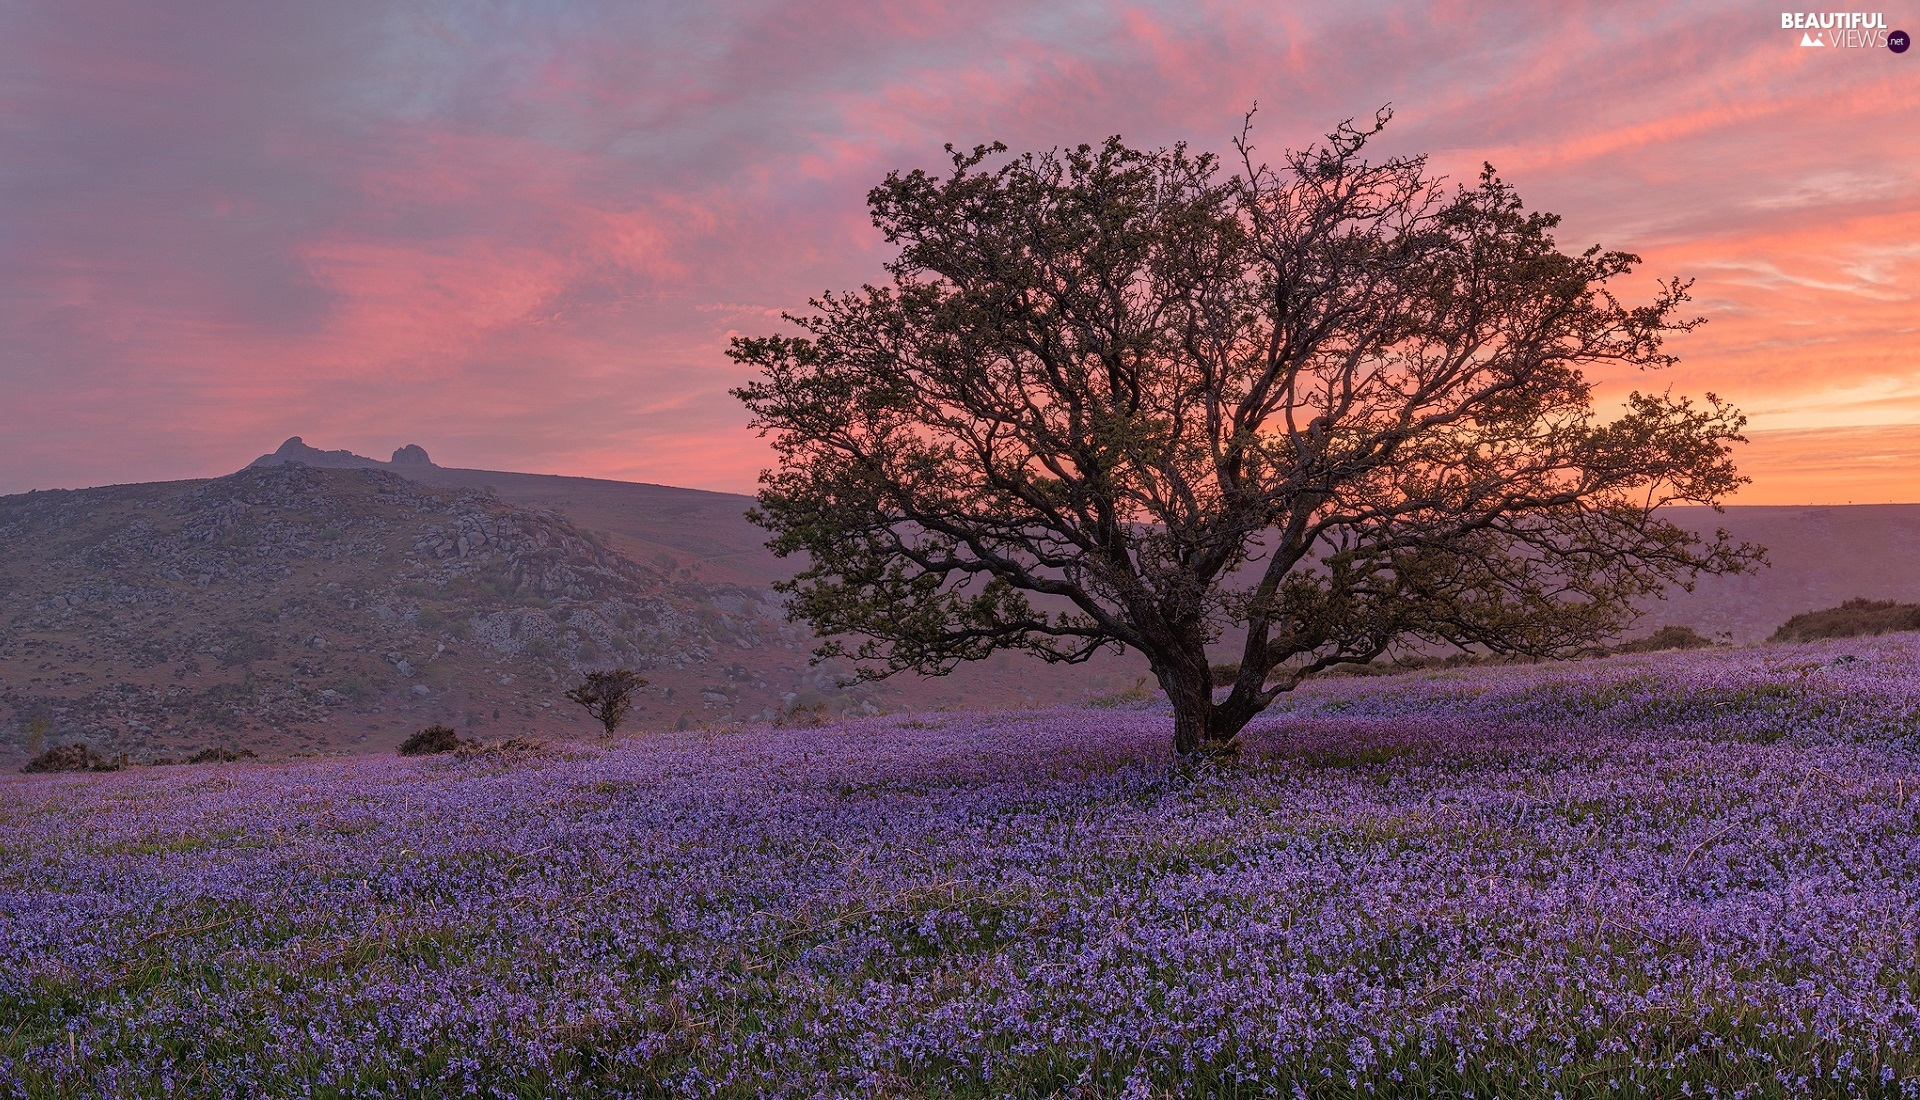 Flowers, trees, The Hills, Meadow, Great Sunsets